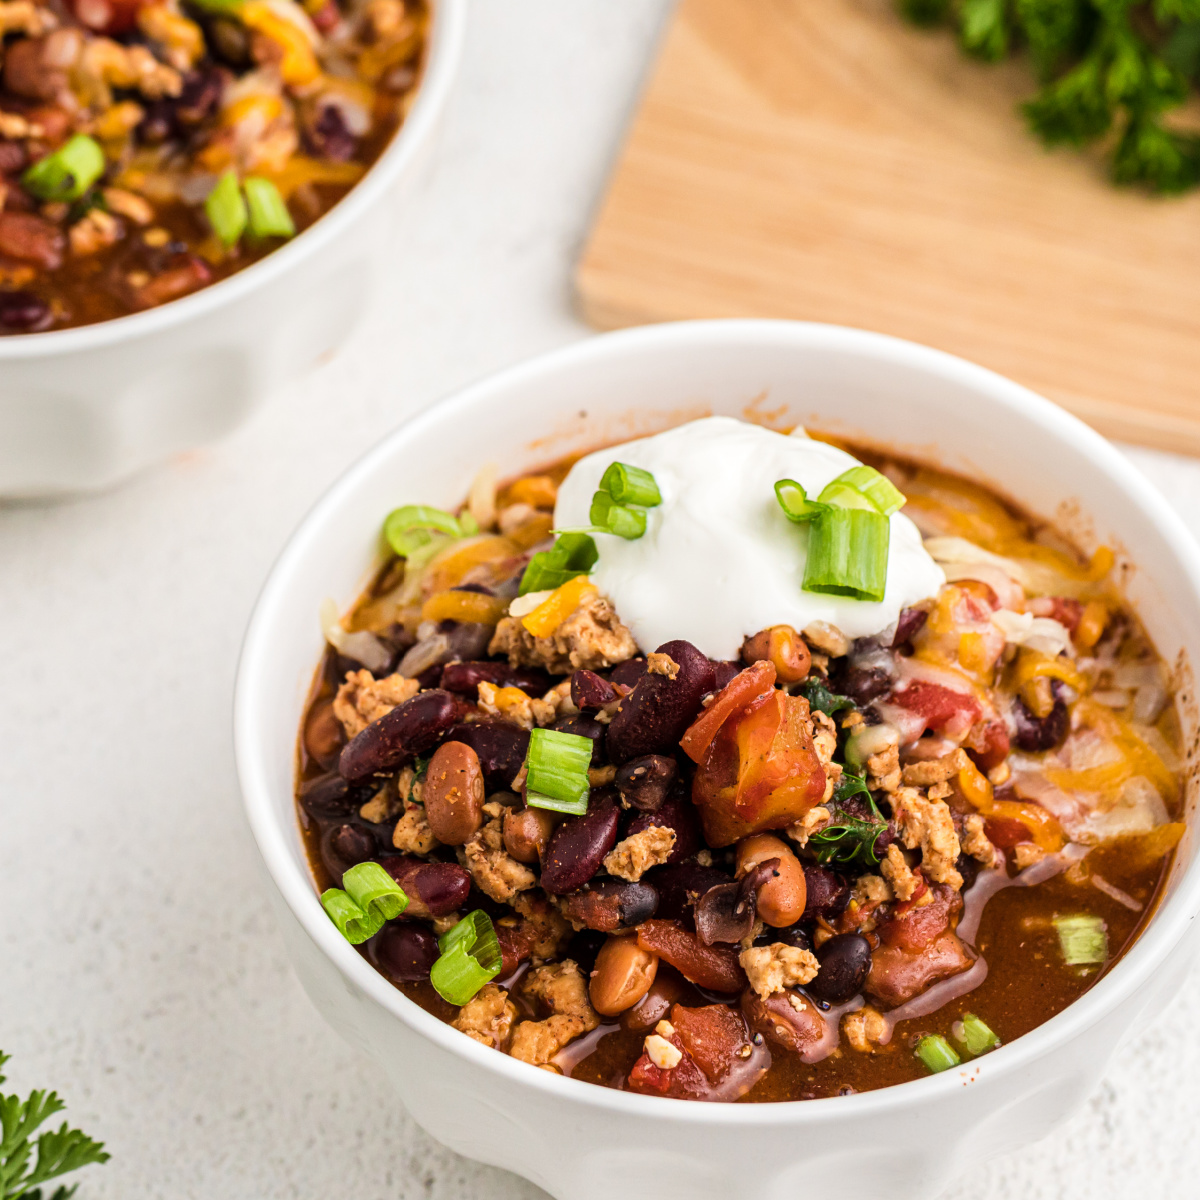 Slow Cooker Turkey Chili with toppings in a white bowl.